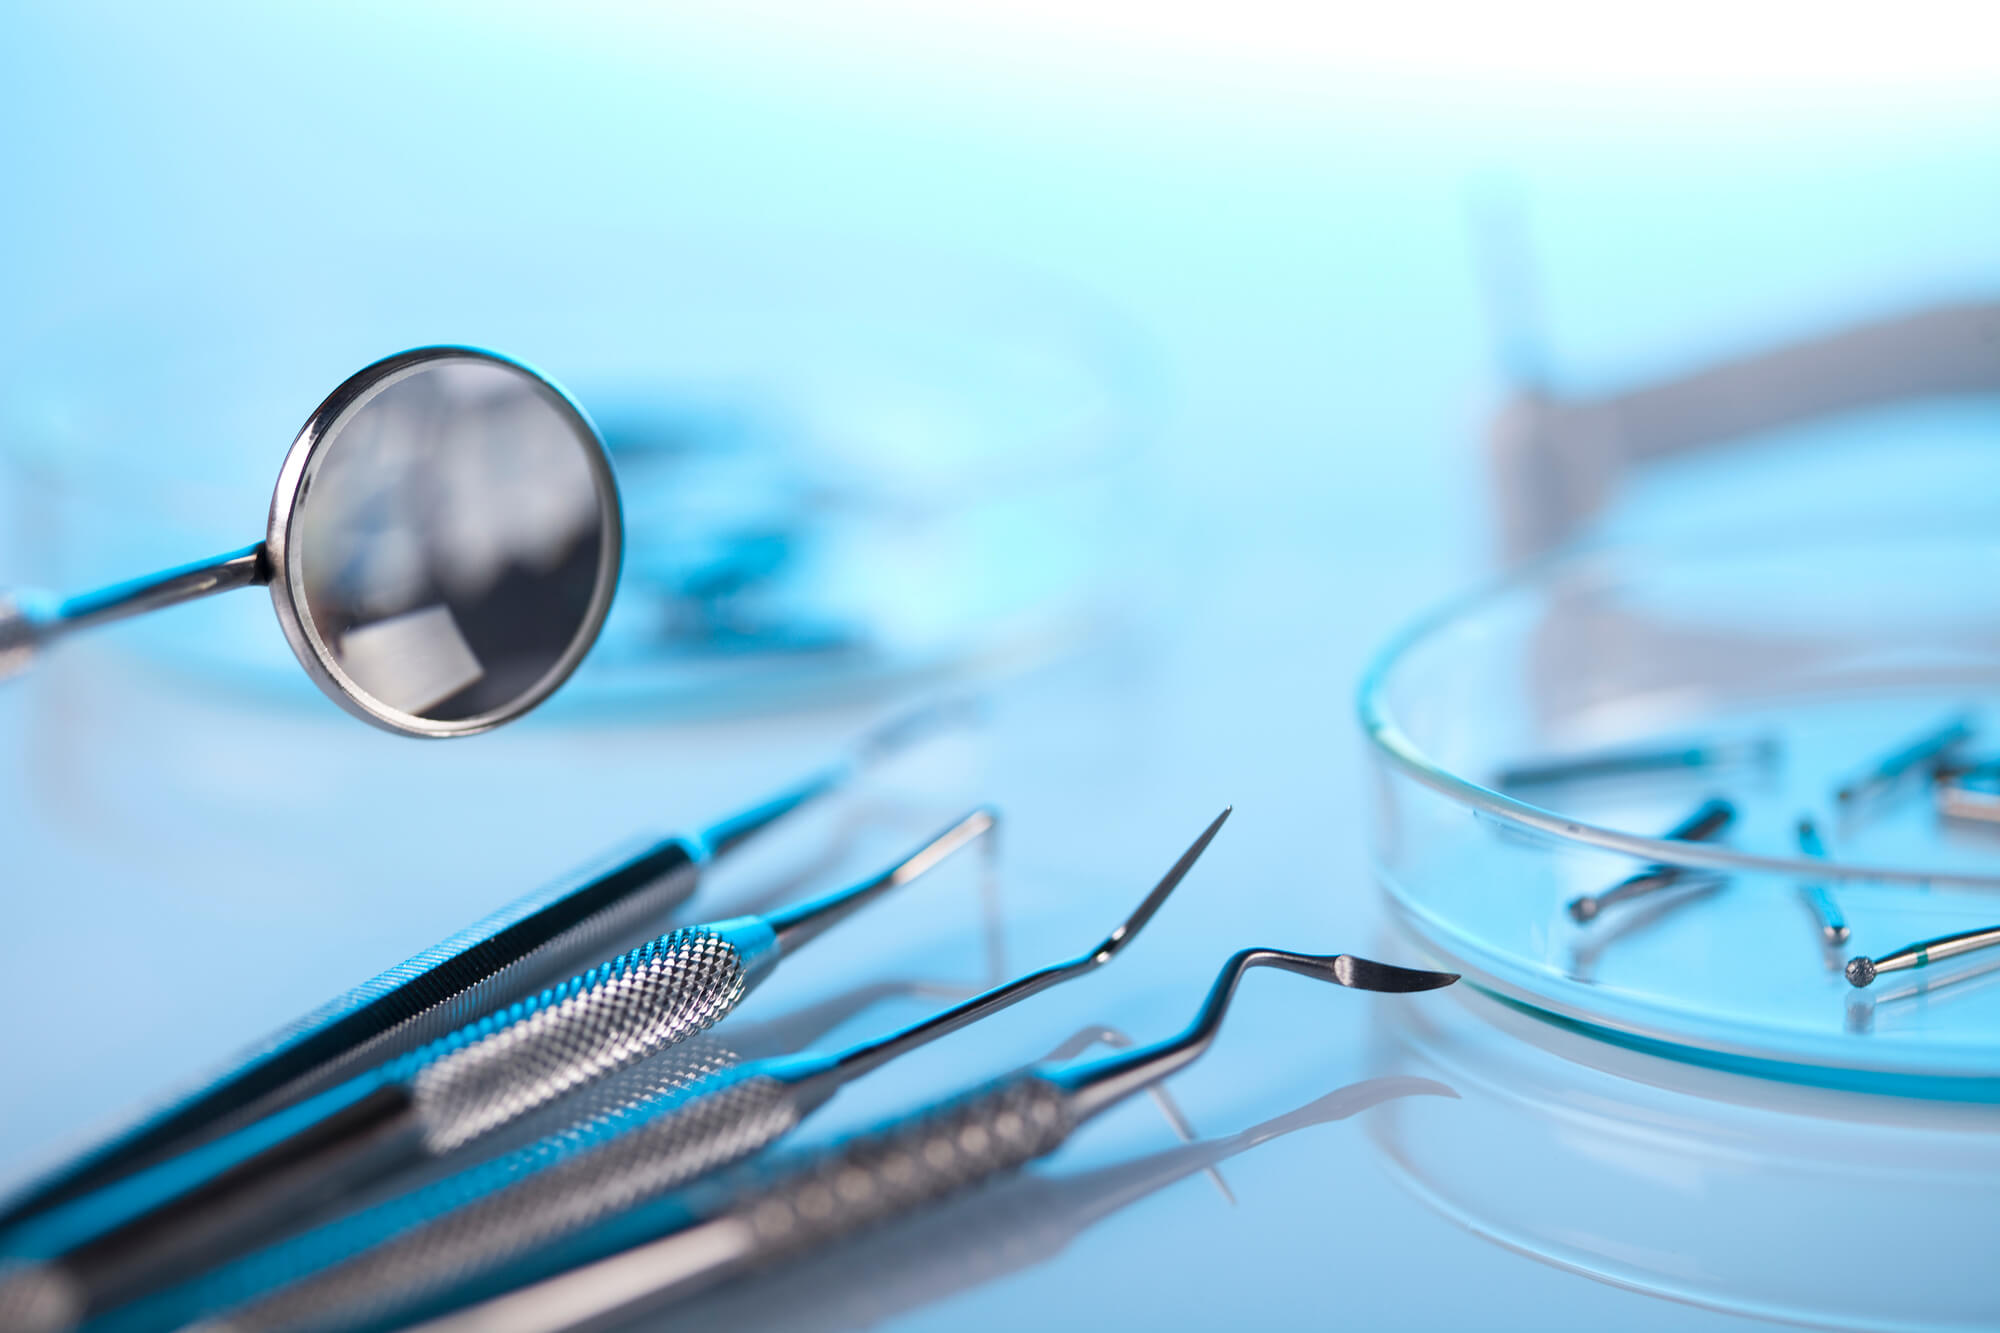 who offers dental implants orlando?